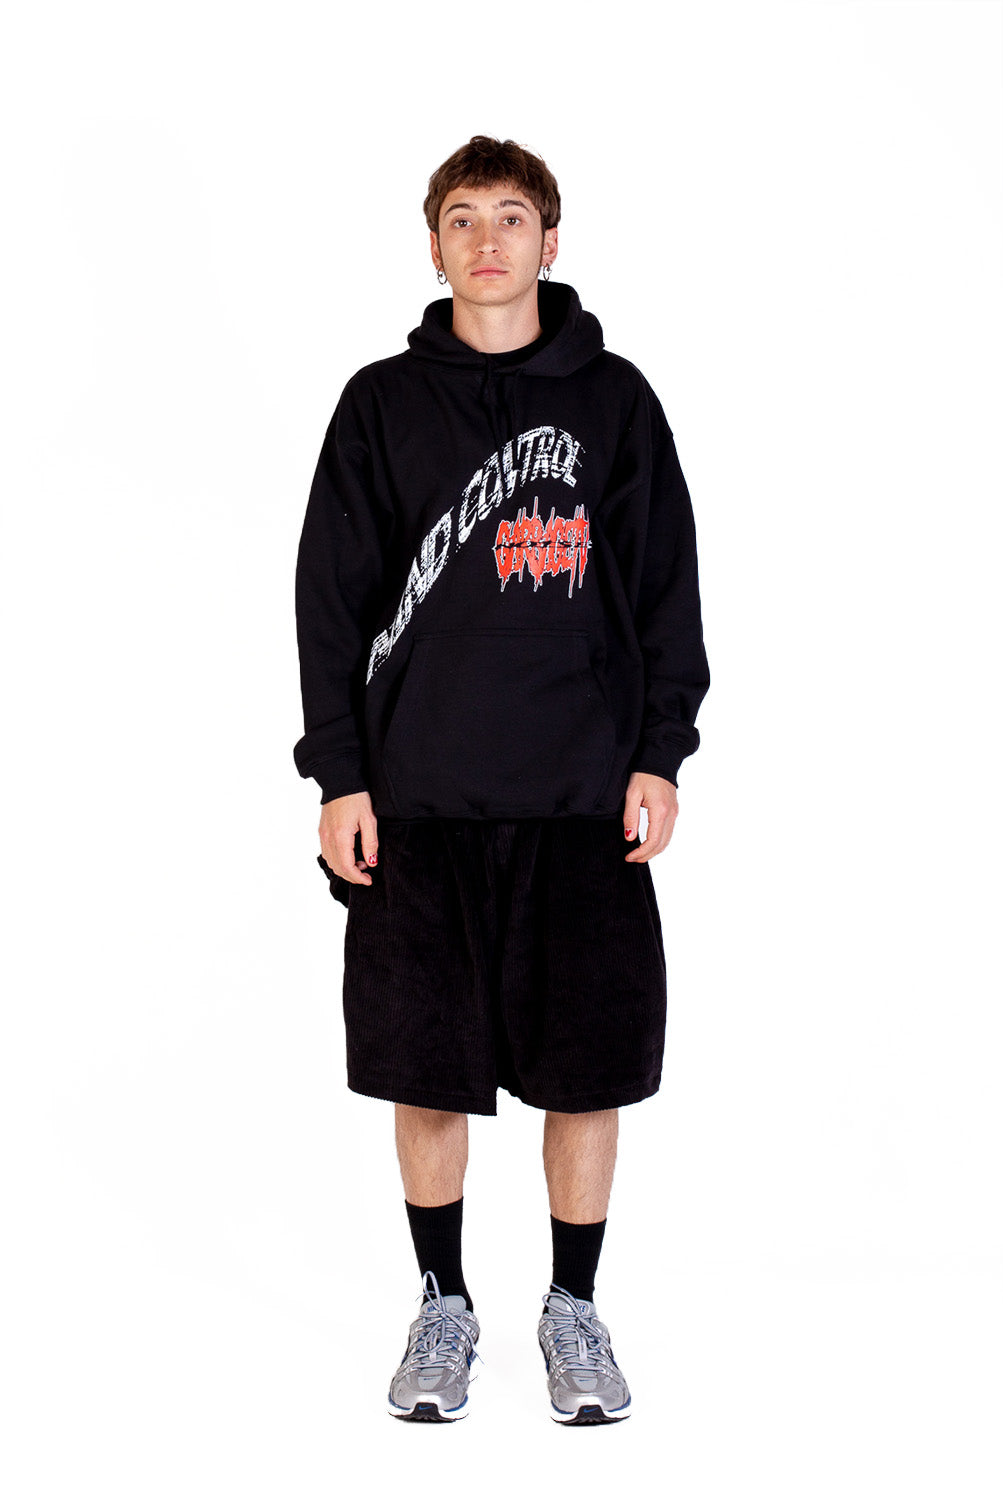 KNOW ONESELF - HOODIE - BLACK